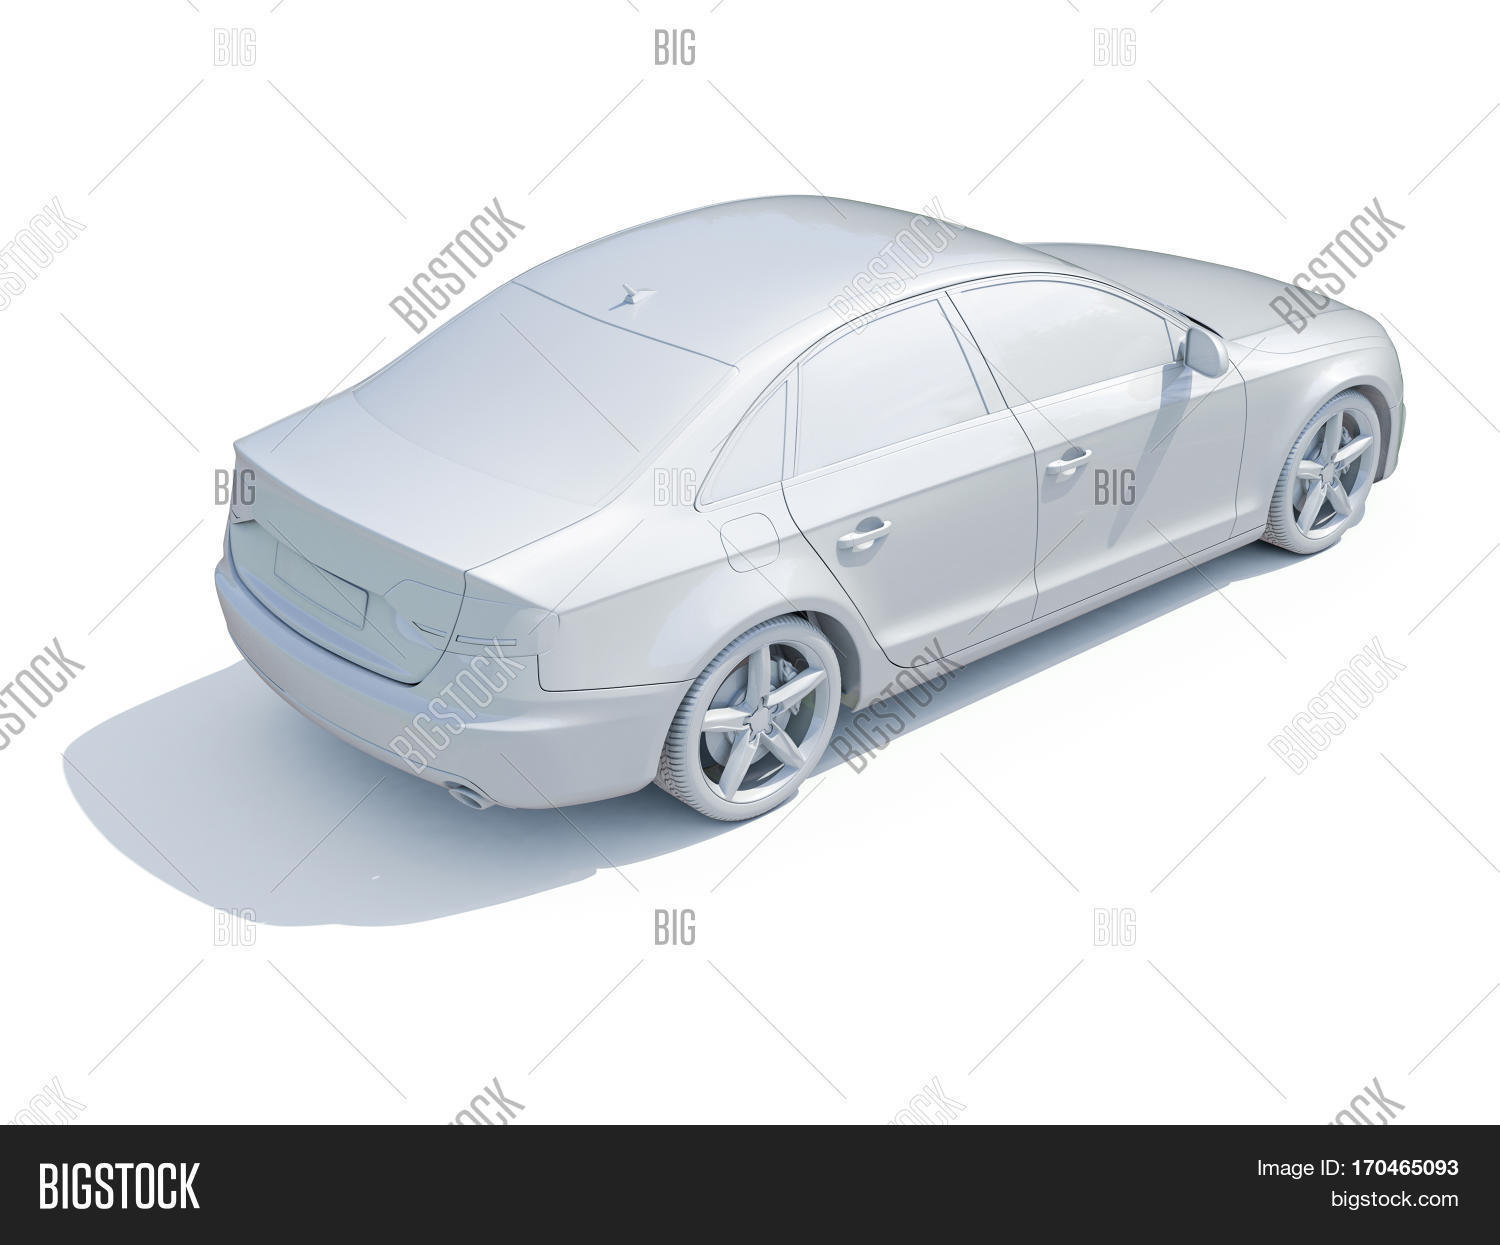 3d render car white blank template image photo bigstock. Black Bedroom Furniture Sets. Home Design Ideas